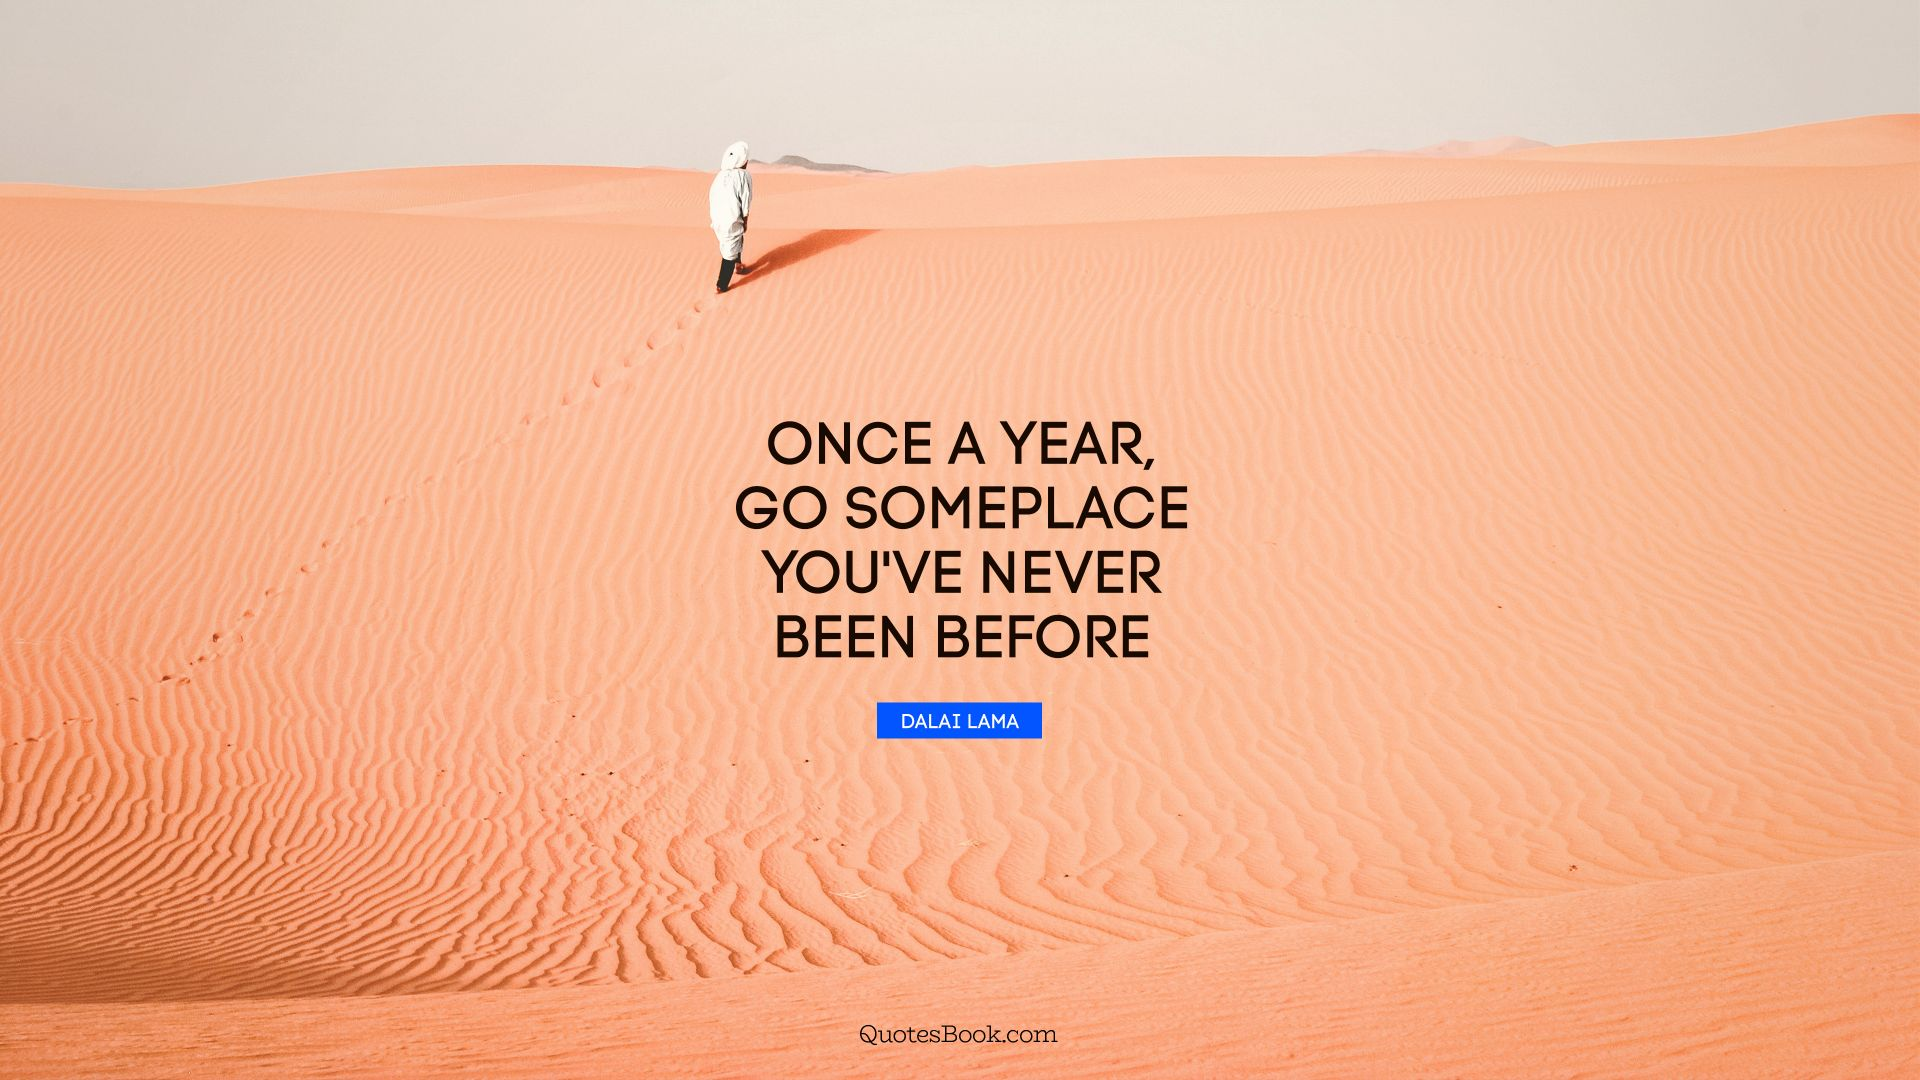 Once a year, go someplace you've never been before. - Quote by Dalai Lama